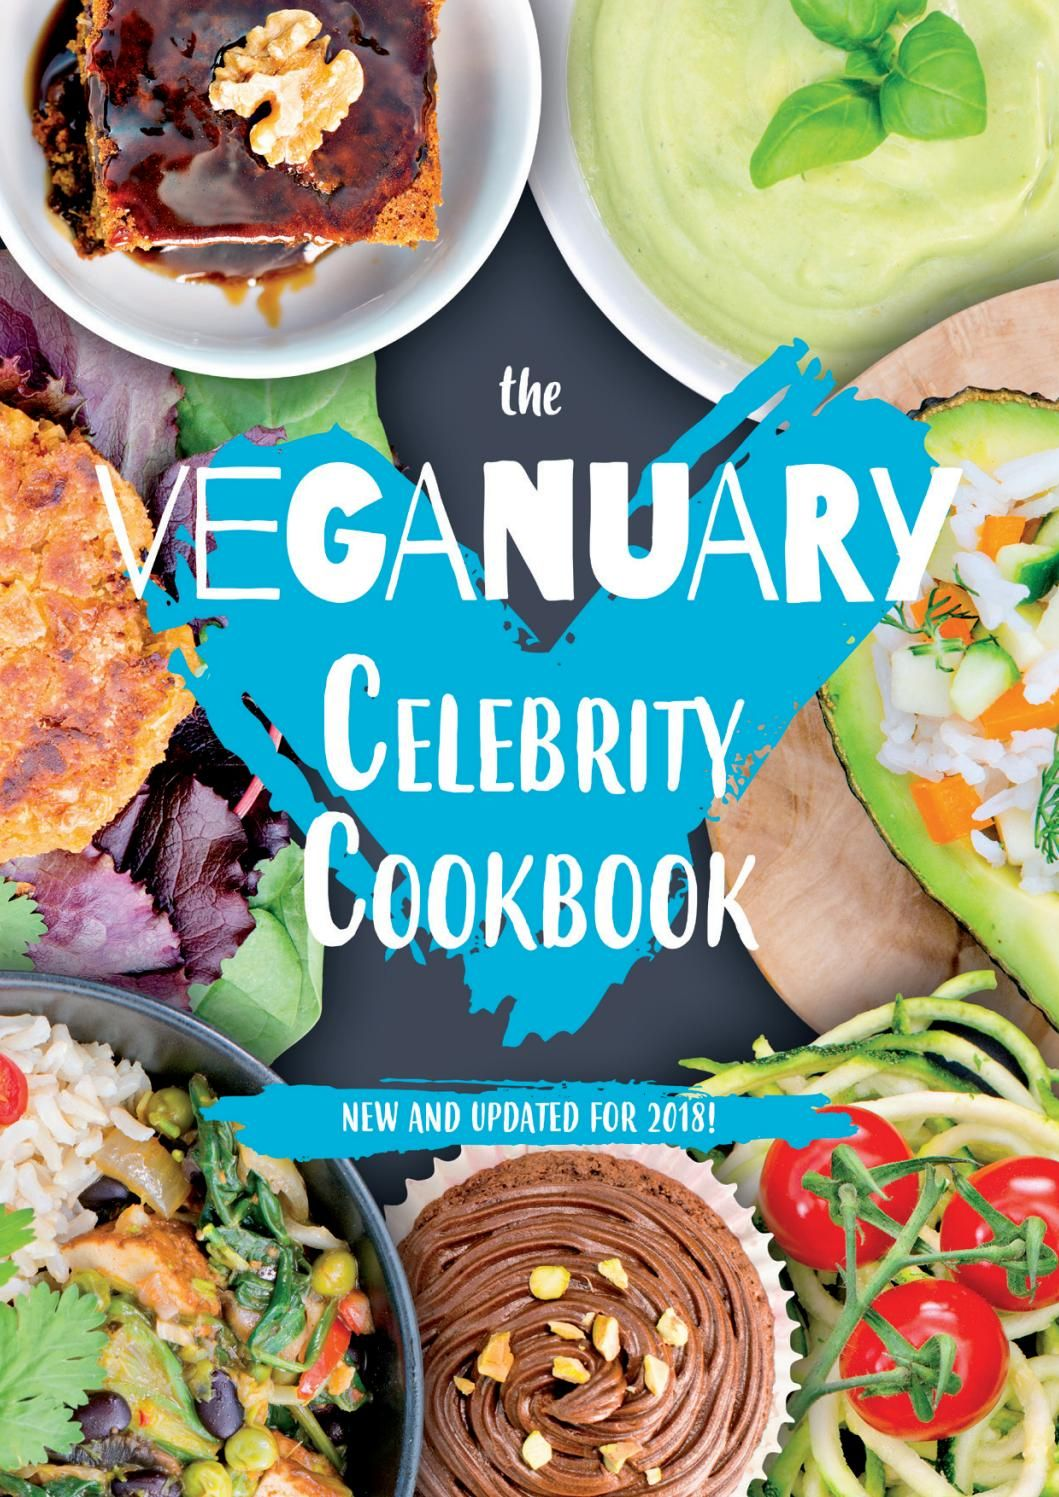 Veganuary Celebrity Cookbook 2018 | Celebrity